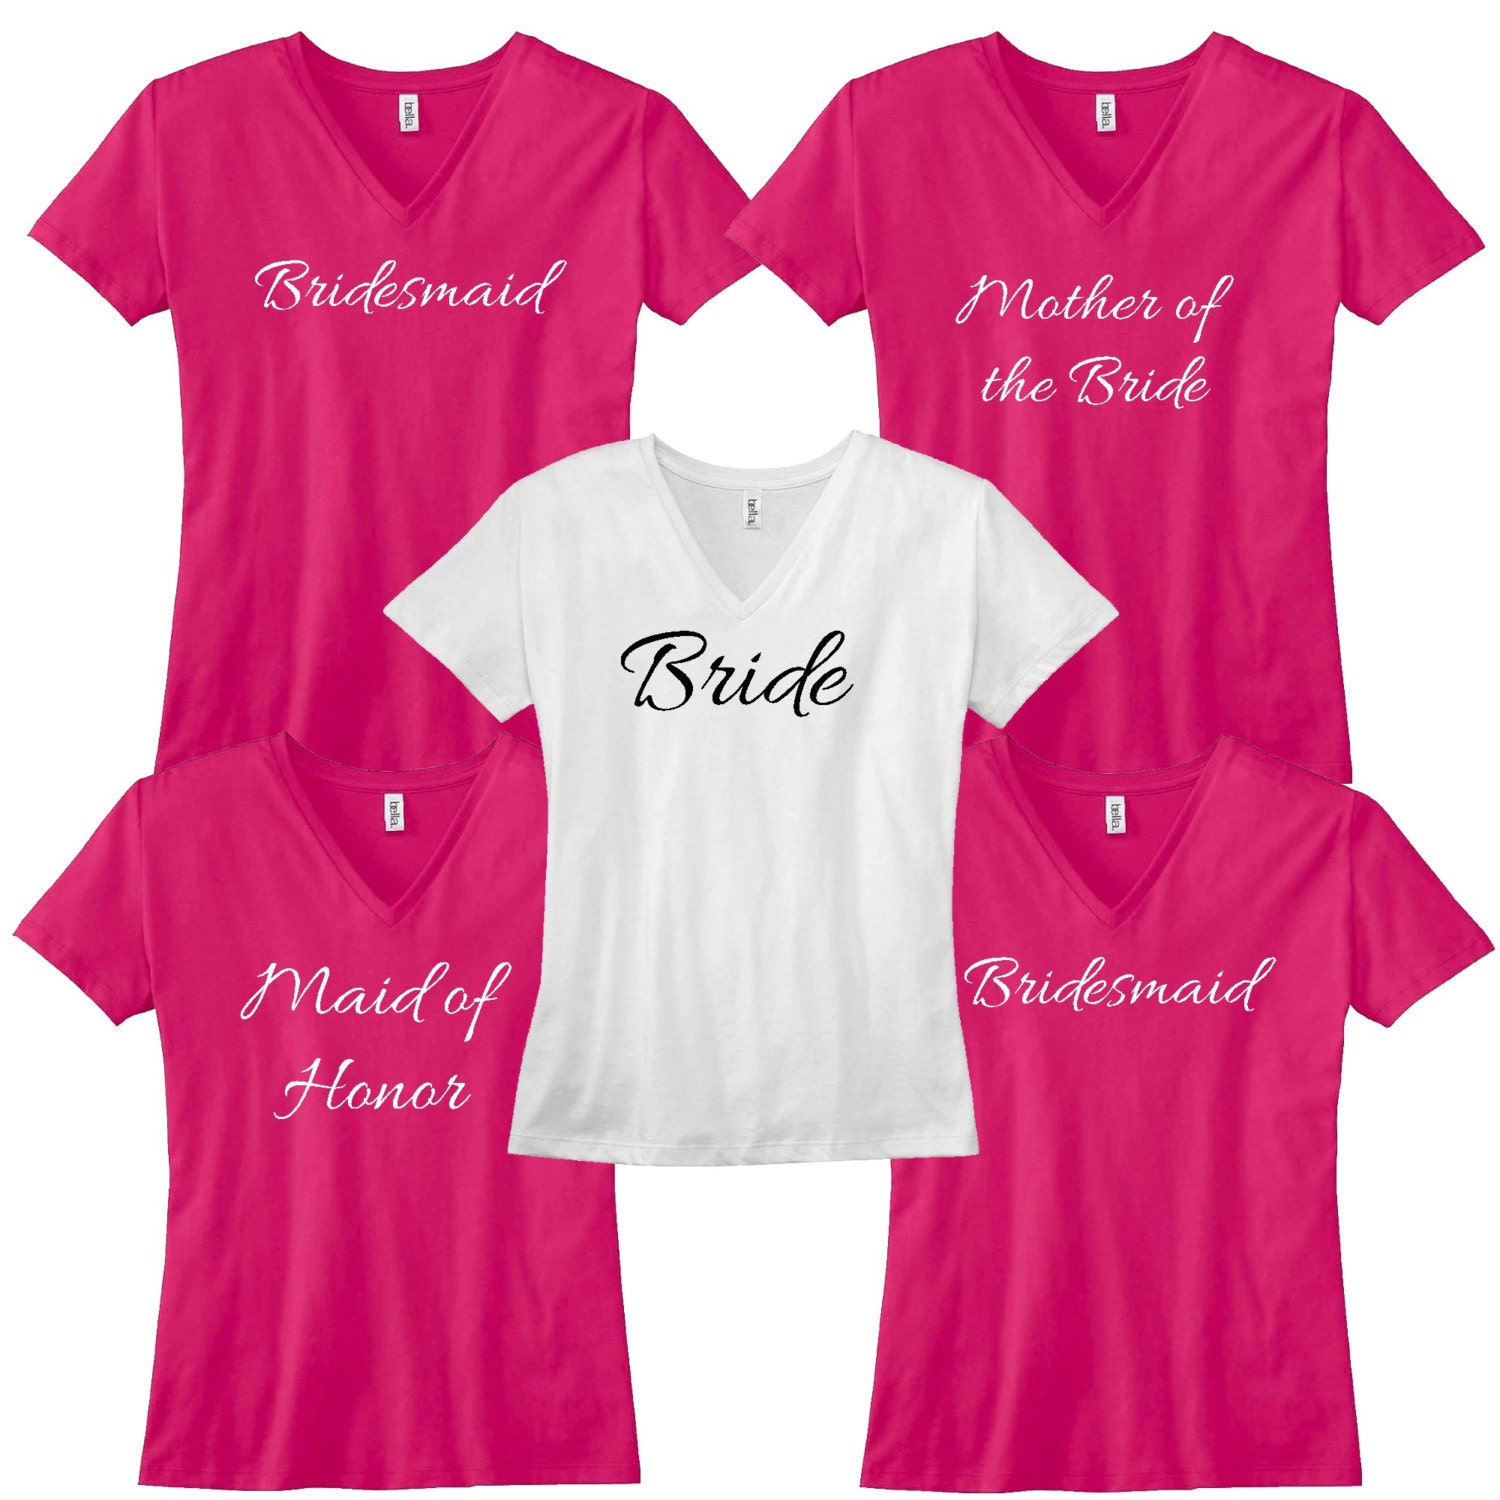 96 Bachelorette Party Shirts For Bridesmaids Shirts For